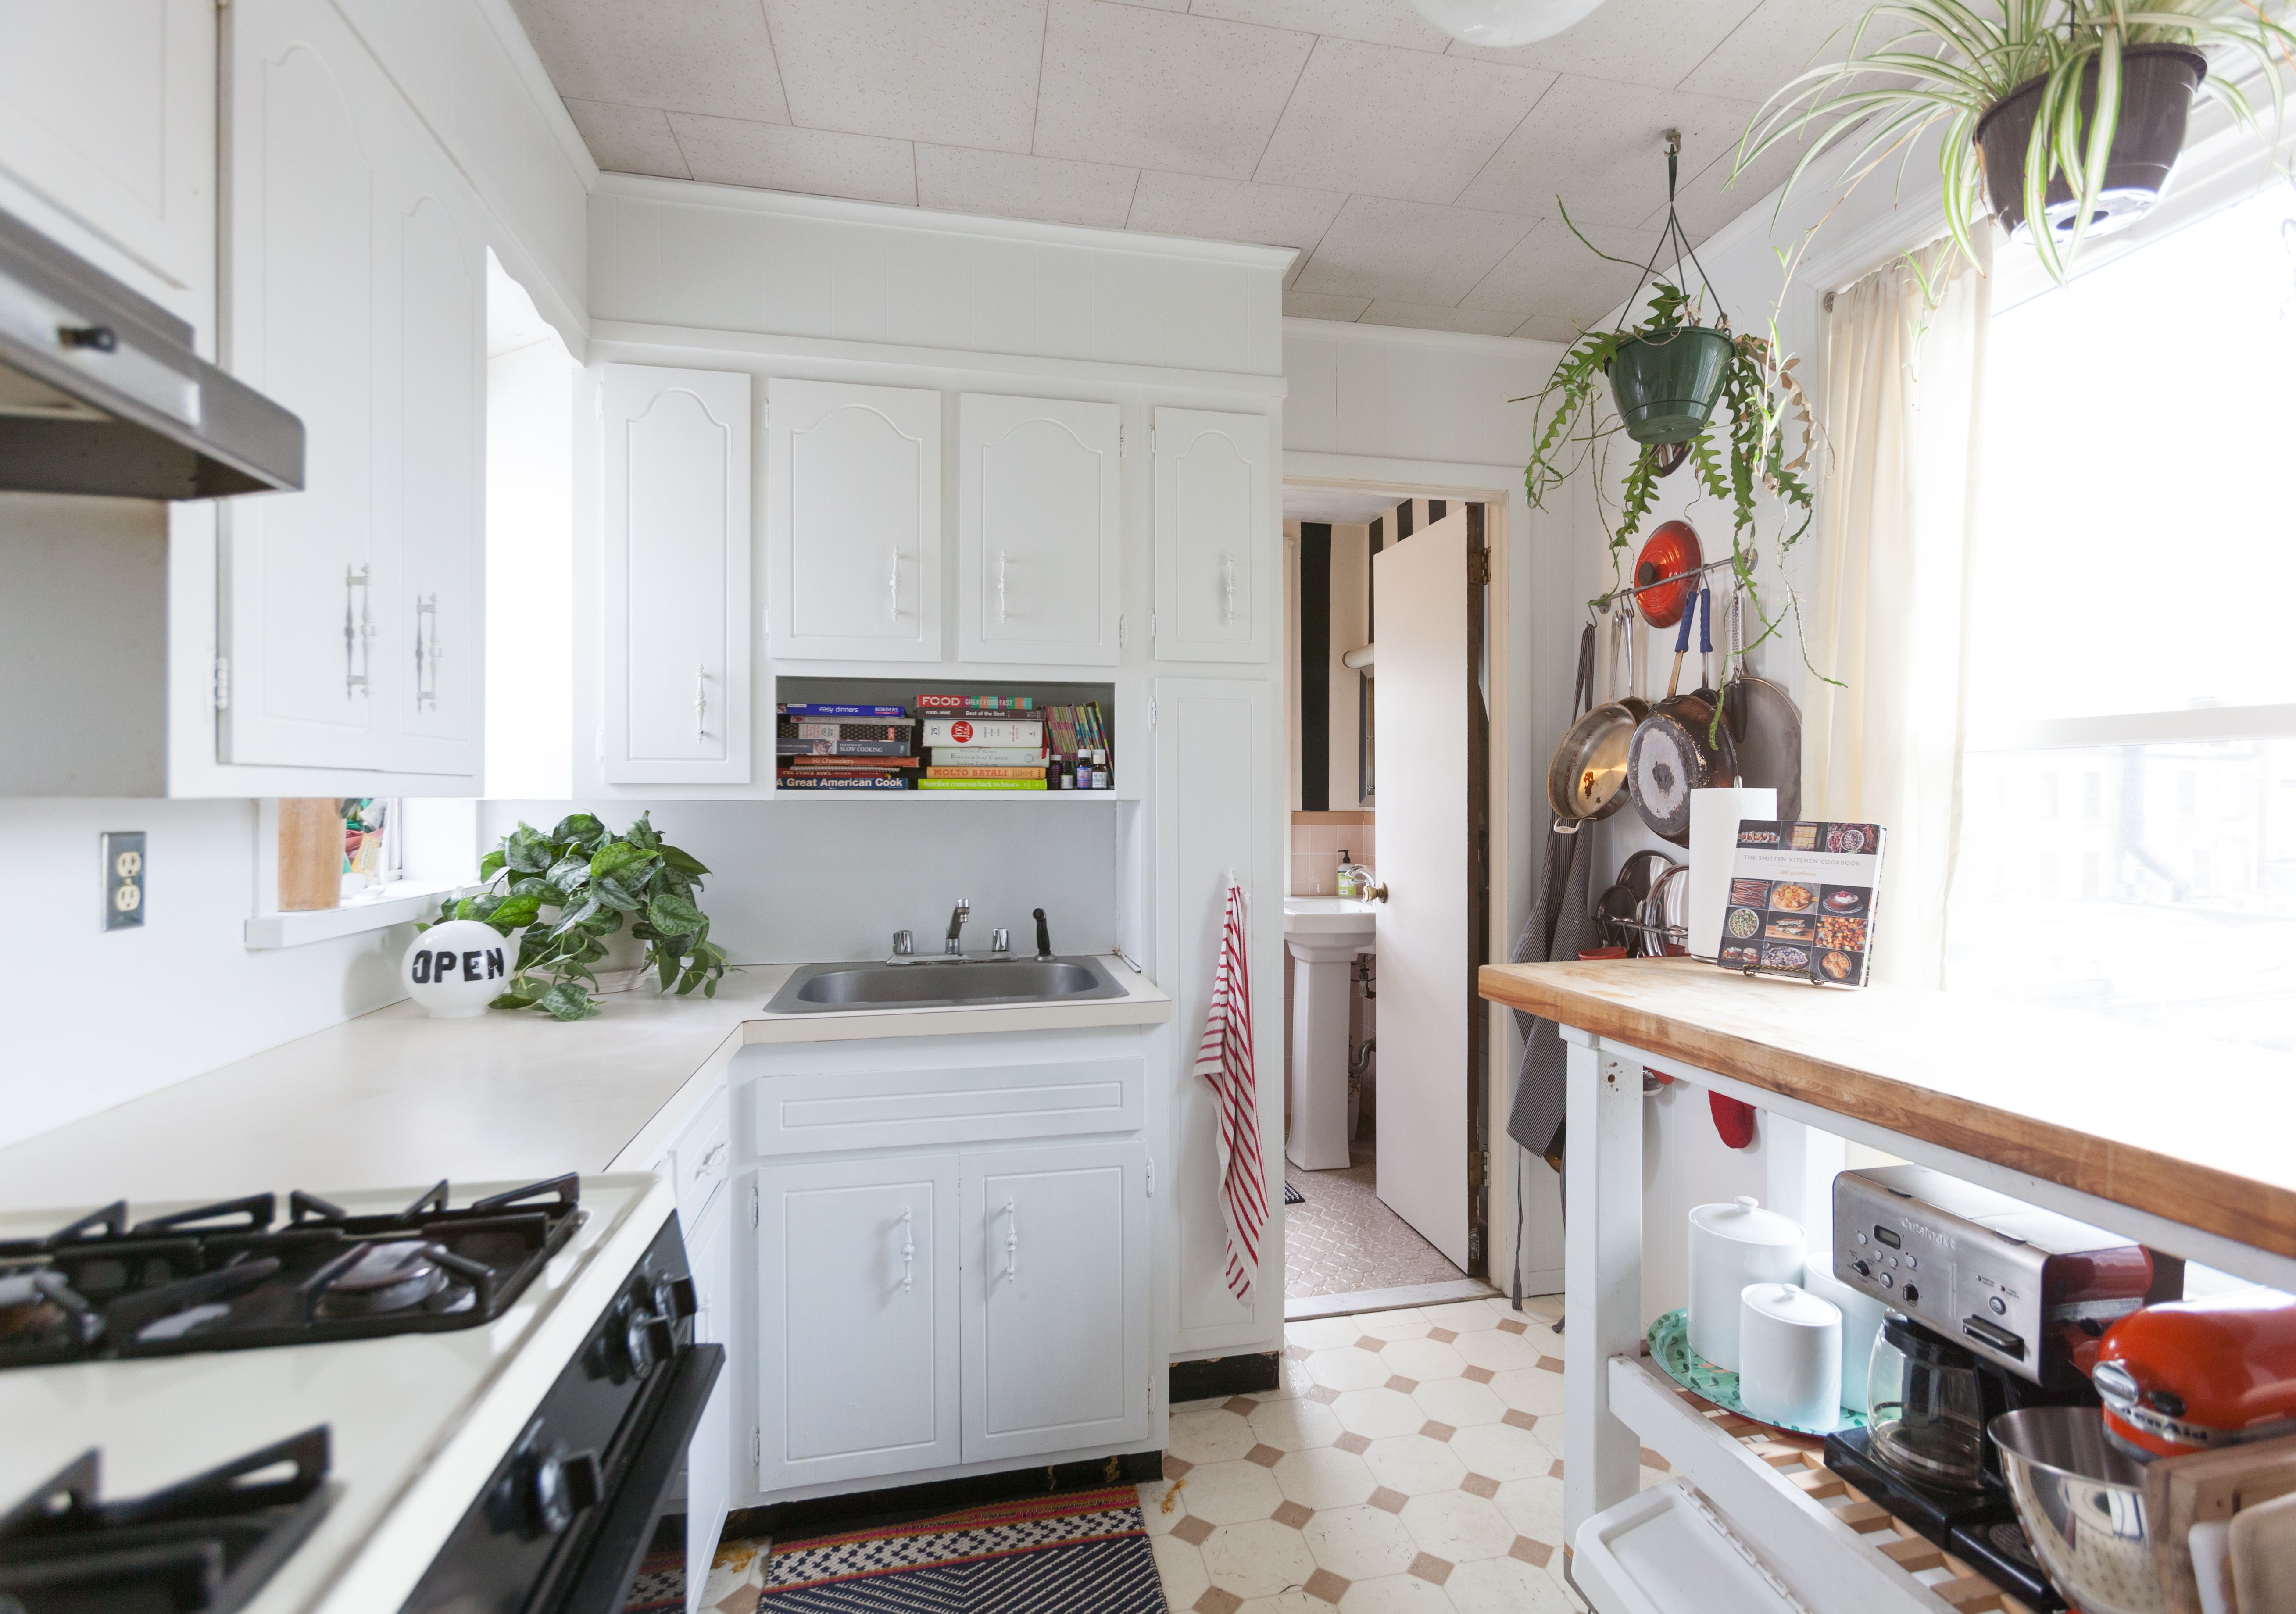 Kitchen Cabinet Styles: The Differences Between Stock, Semi ...